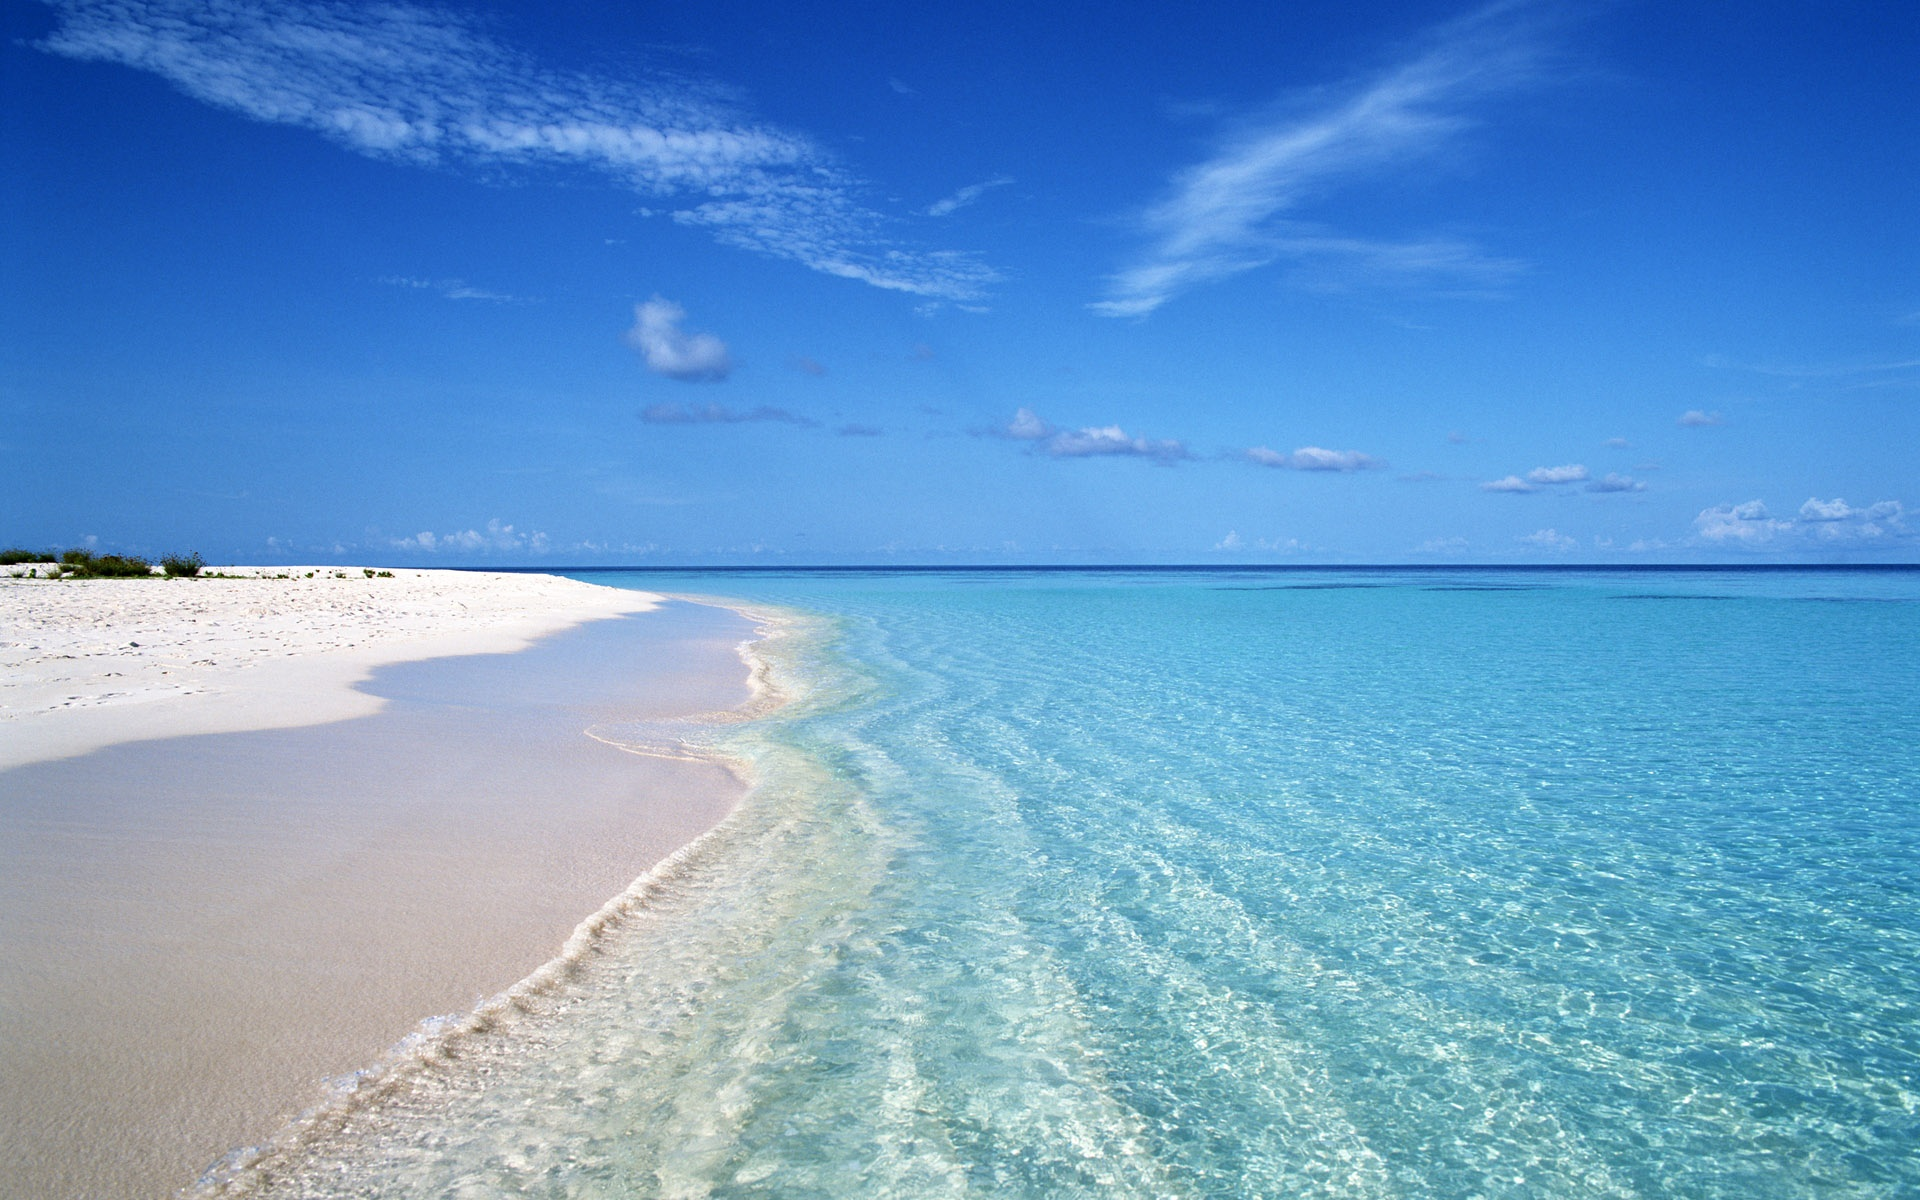 Summer Blue Beach Wave Wallpaper HD For Desktop 1920x1200